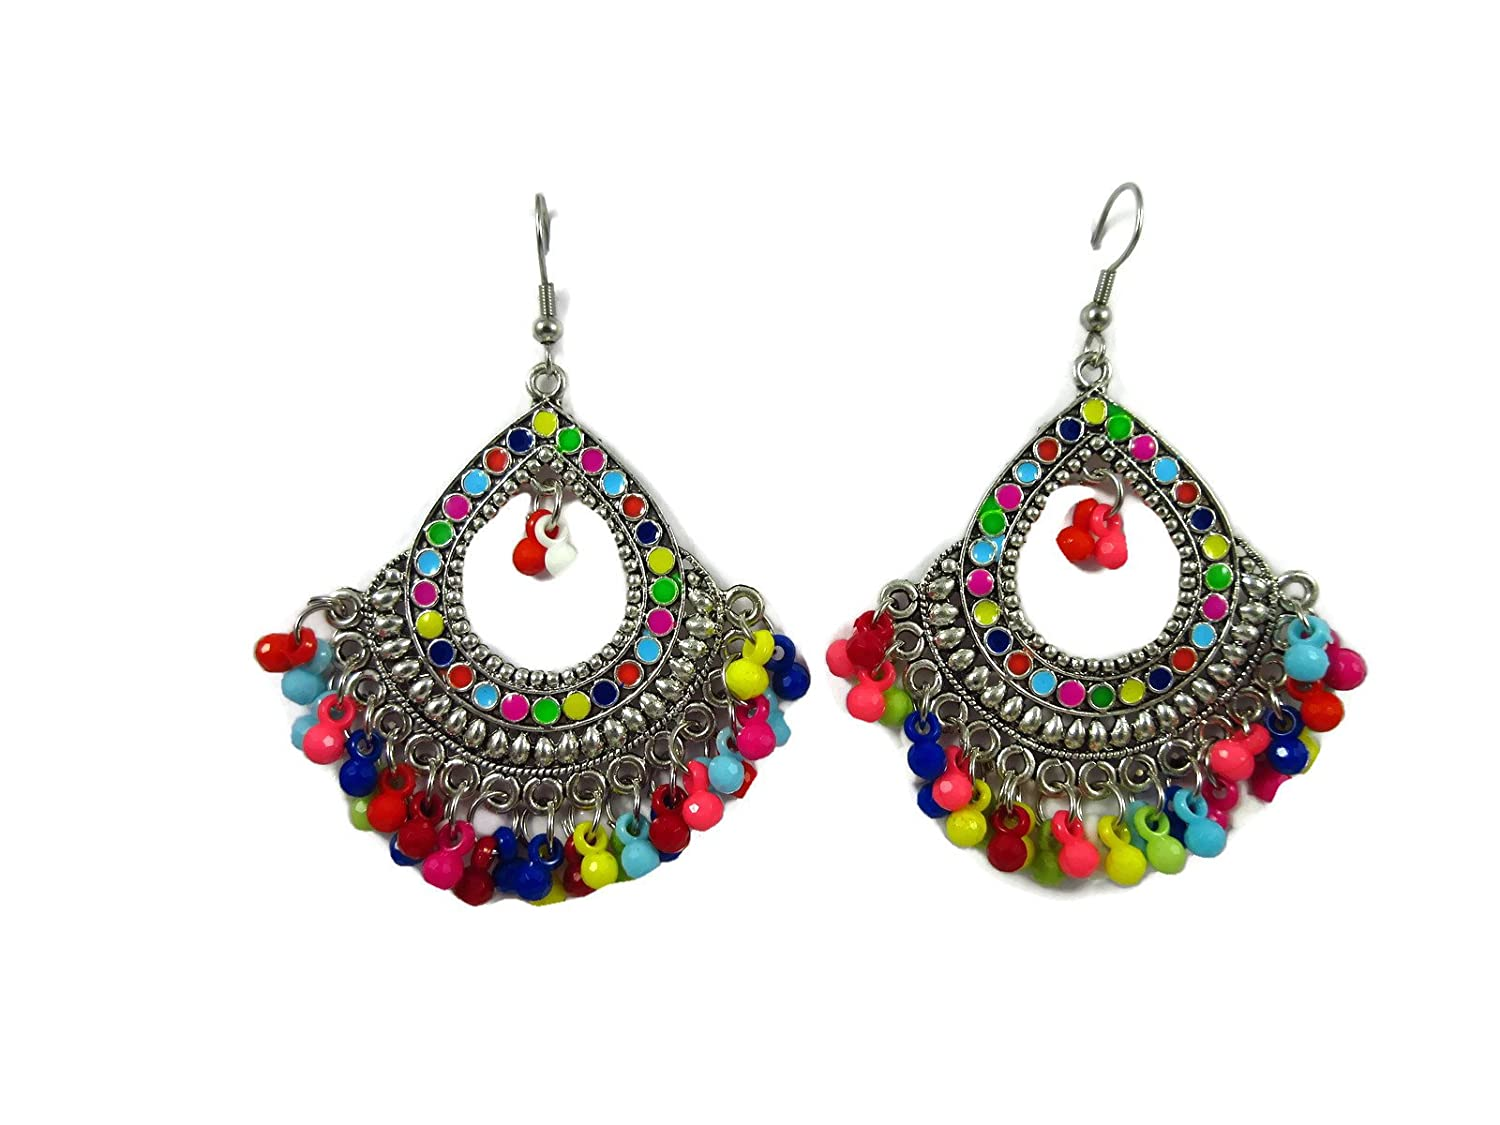 Indian Fashion Jewelry Ethnic Silver Oxidized Multi-Color Pearls Jhumka Earrings